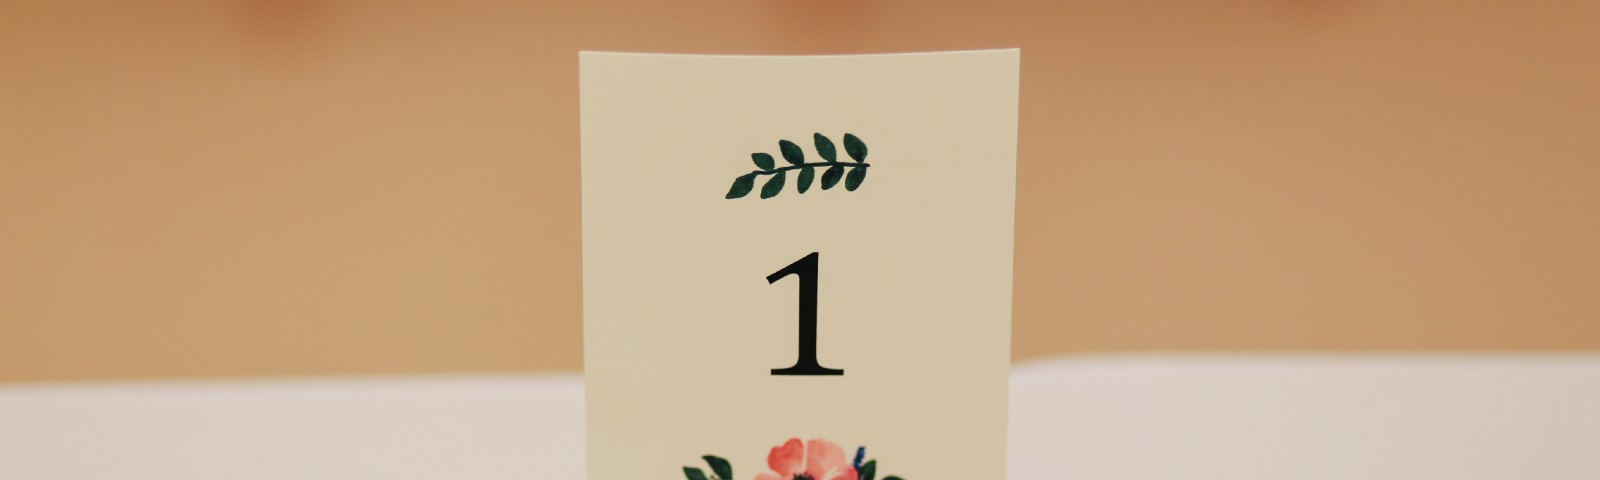 A flowered place setting in a wine cork, with the number 1 on it